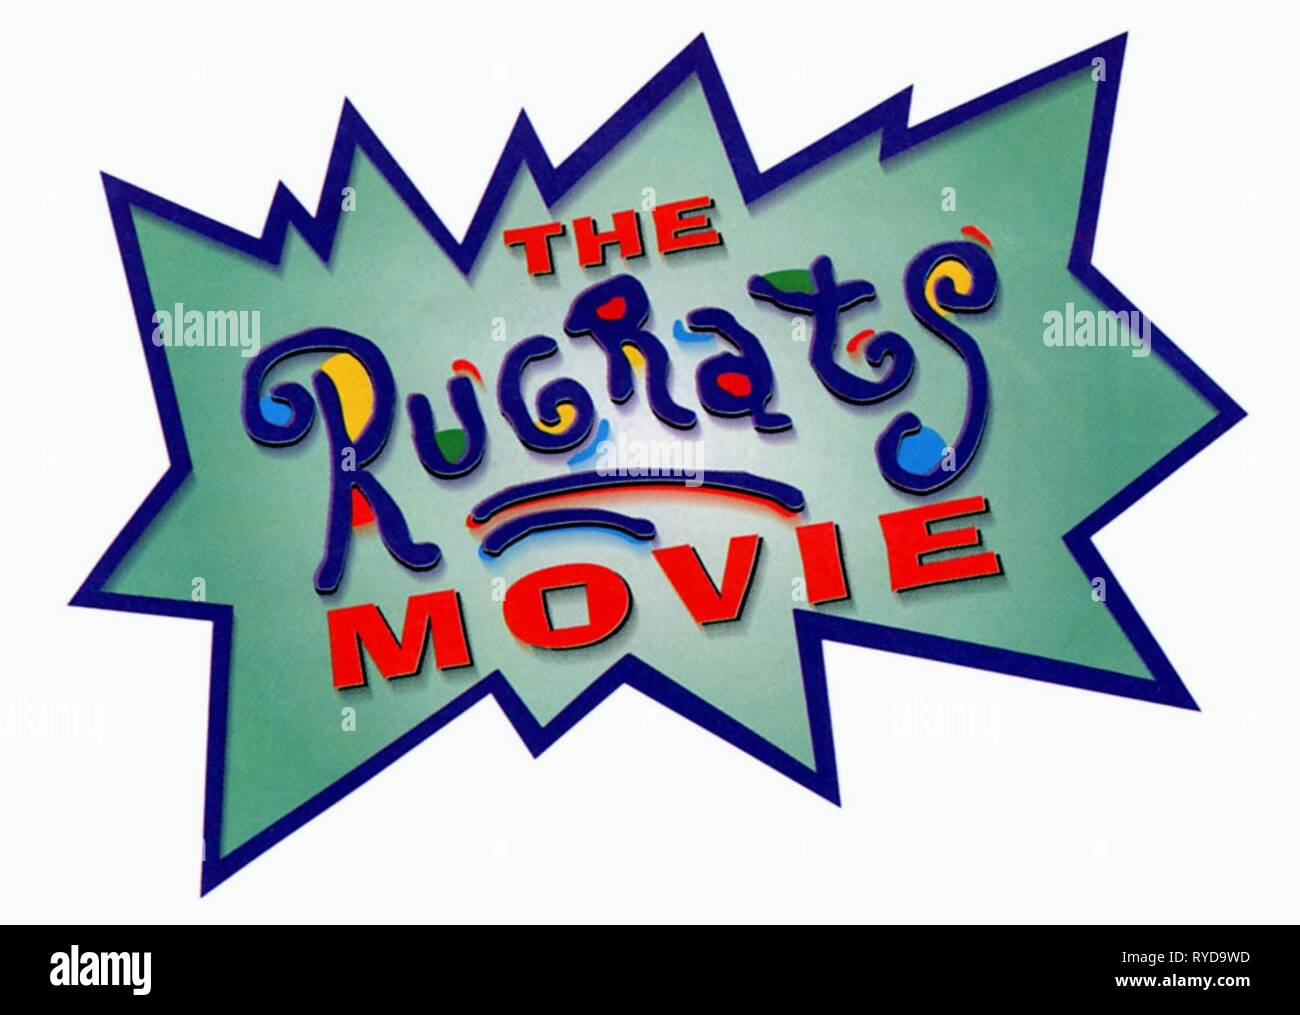 FILM ARTWORK, THE RUGRATS MOVIE, 1998 - Stock Image